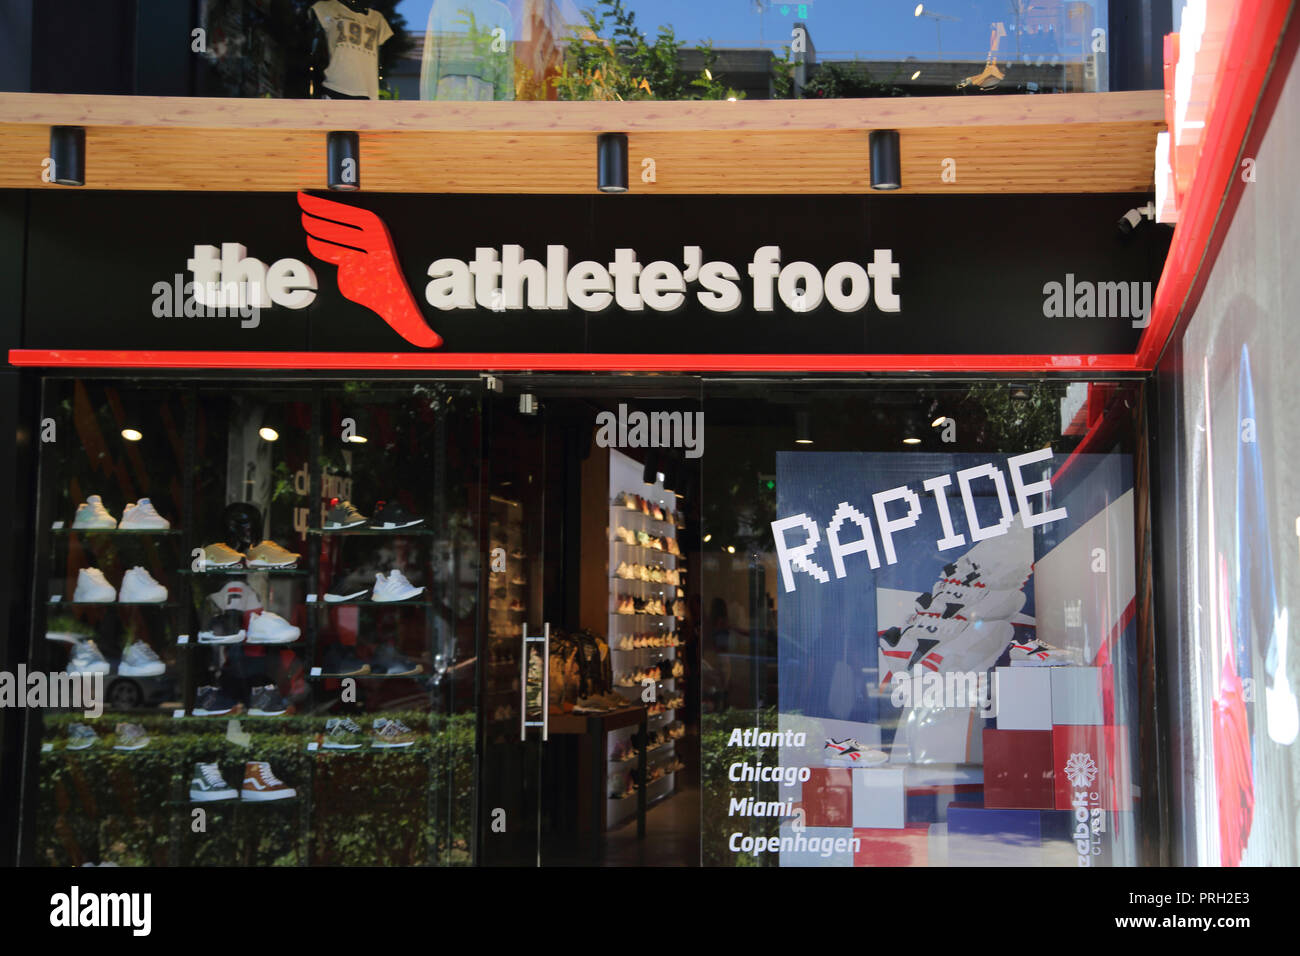 Glyfada Athens Greece The Athletes Foot Shoe Shop - Stock Image